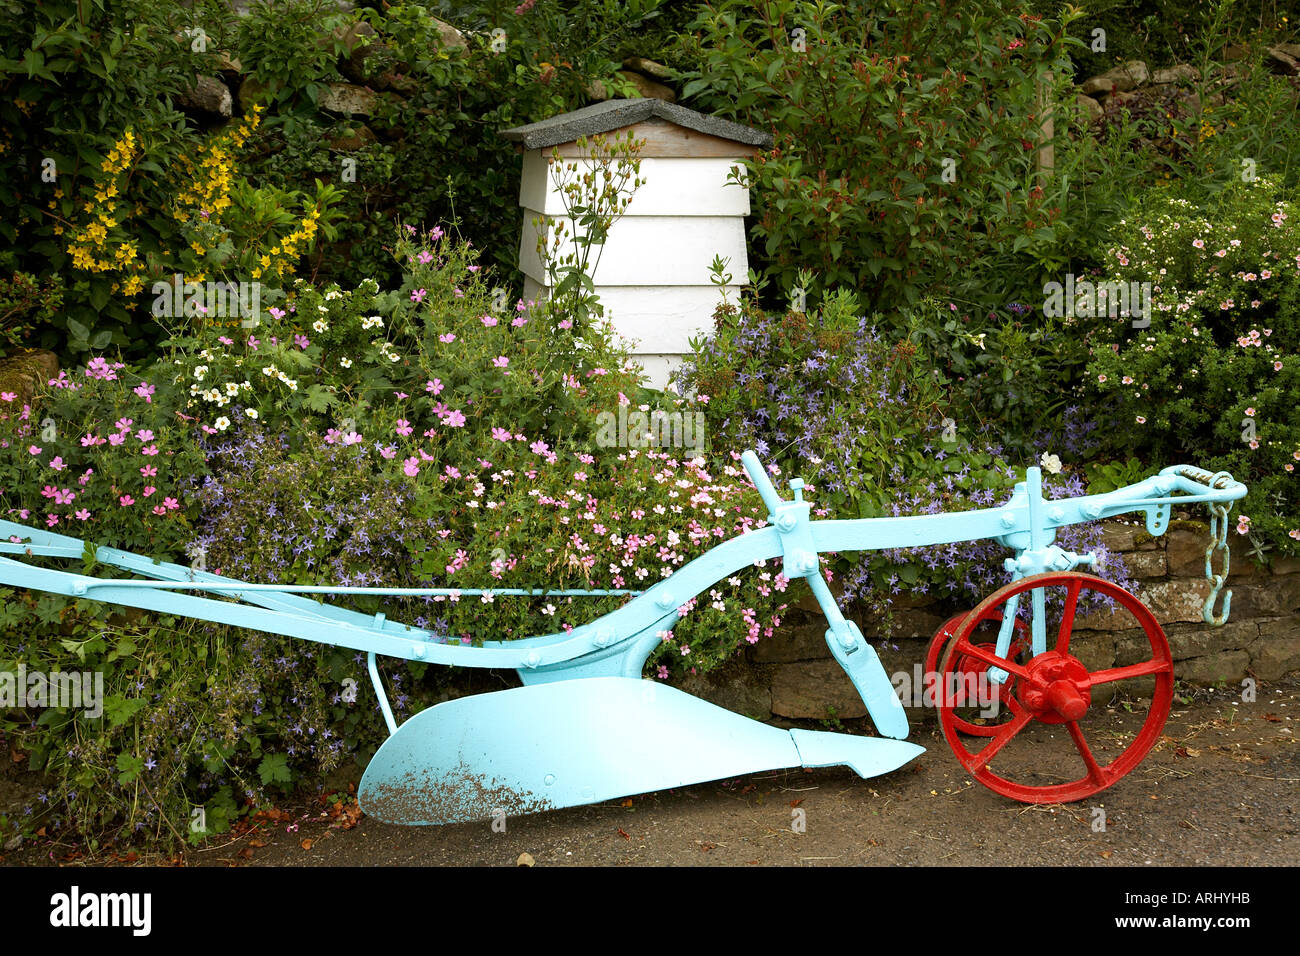 A white beehive and an old plough with the wheel painted red used as a feature in a garden in Dent in the Yorkshire Dales National Park - Stock Image